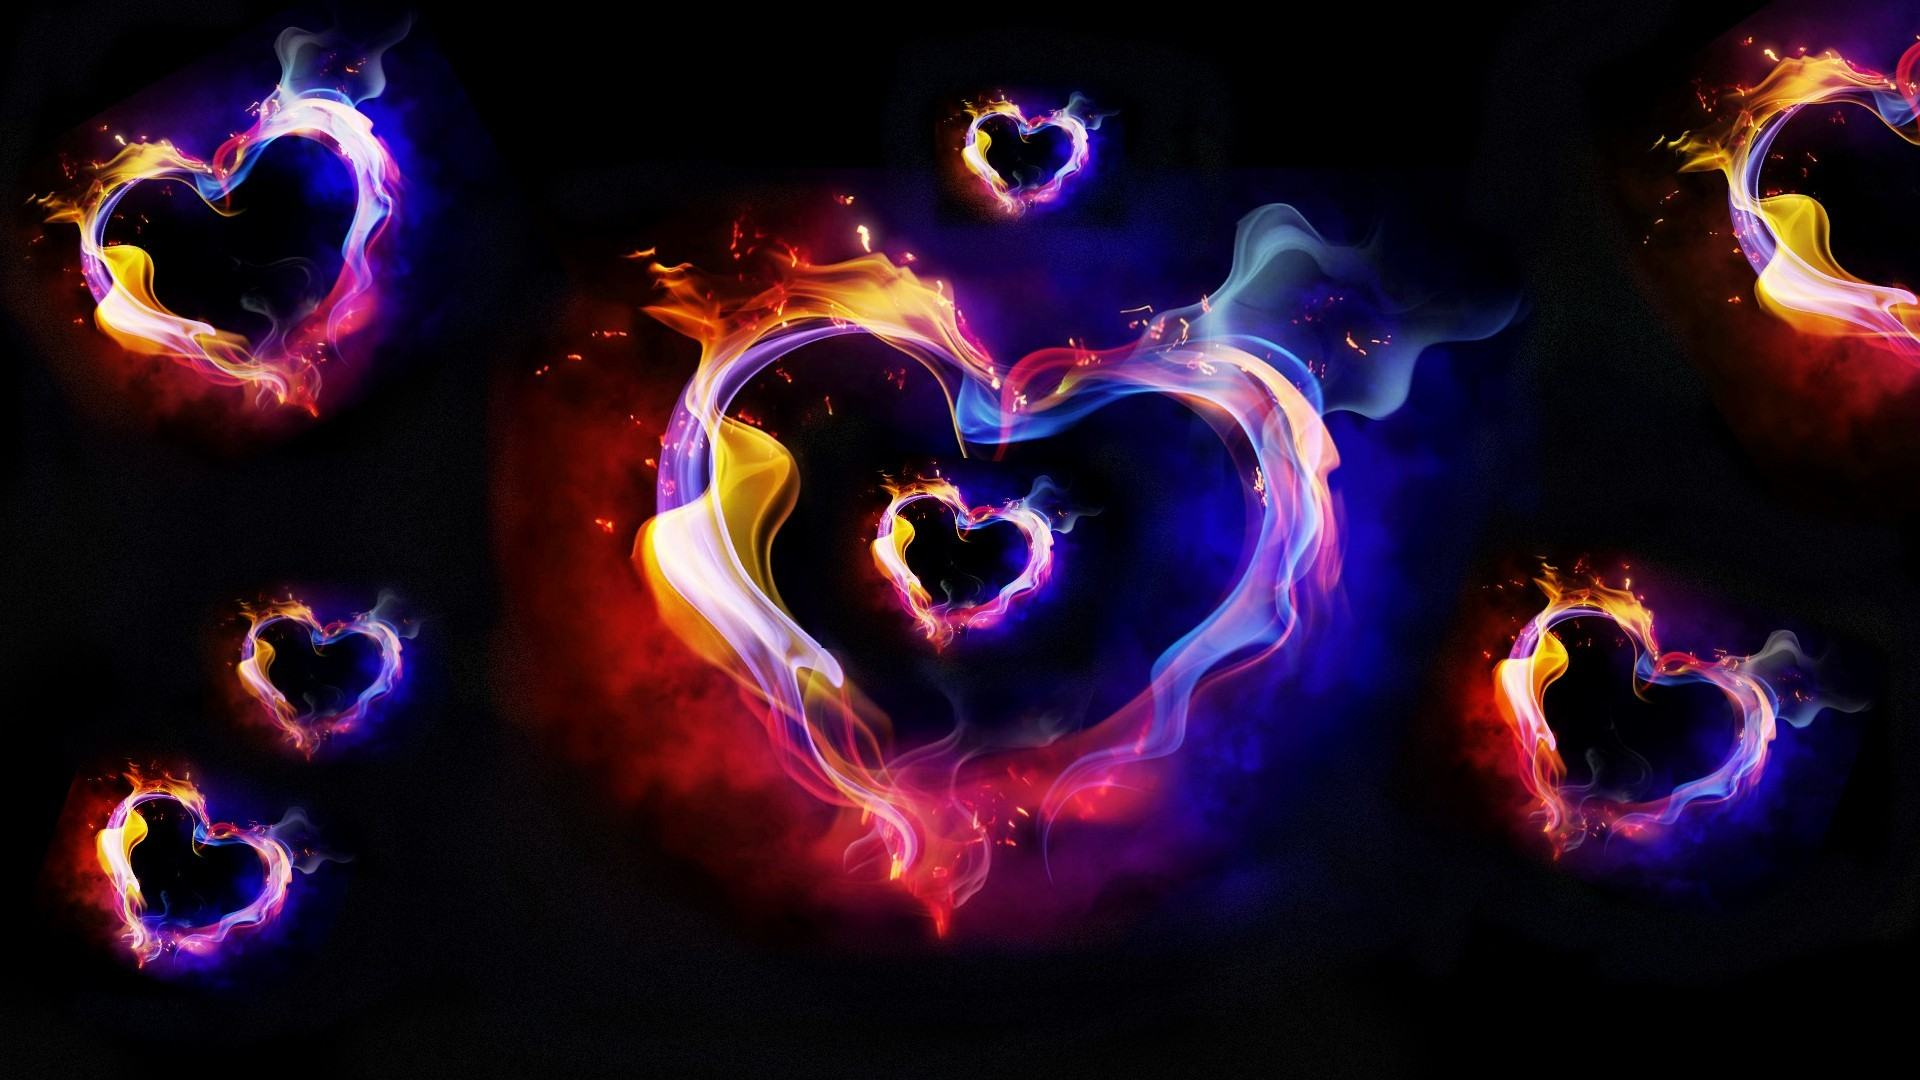 heart-flamesamandaleighfHeart Mindchild-parents-fightingElectromagnetic field of heartheart-and-mindthe-shadowfemale tree5